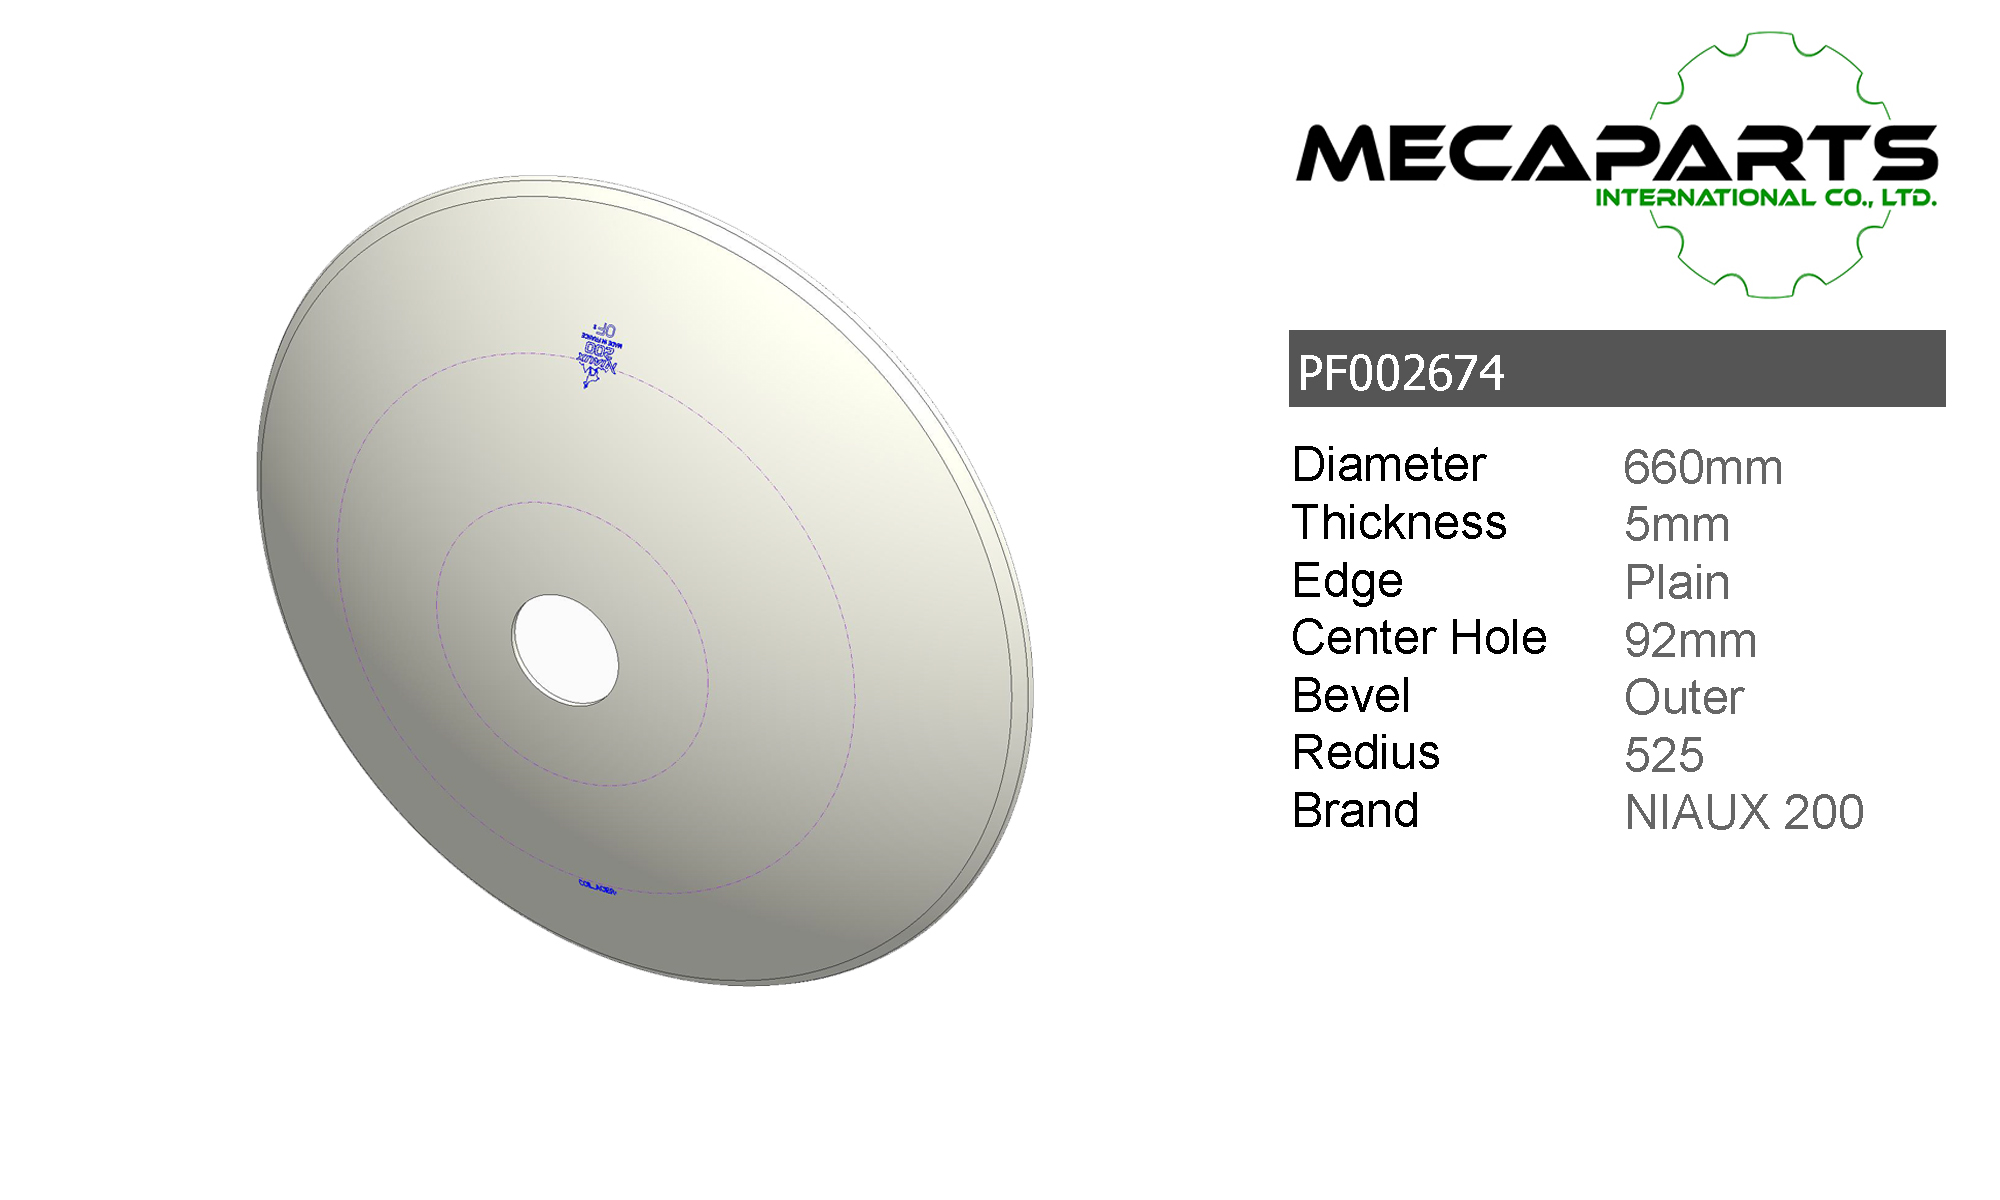 PF002674 Disc Plain 660x5, Round Center Hole 92mm Image